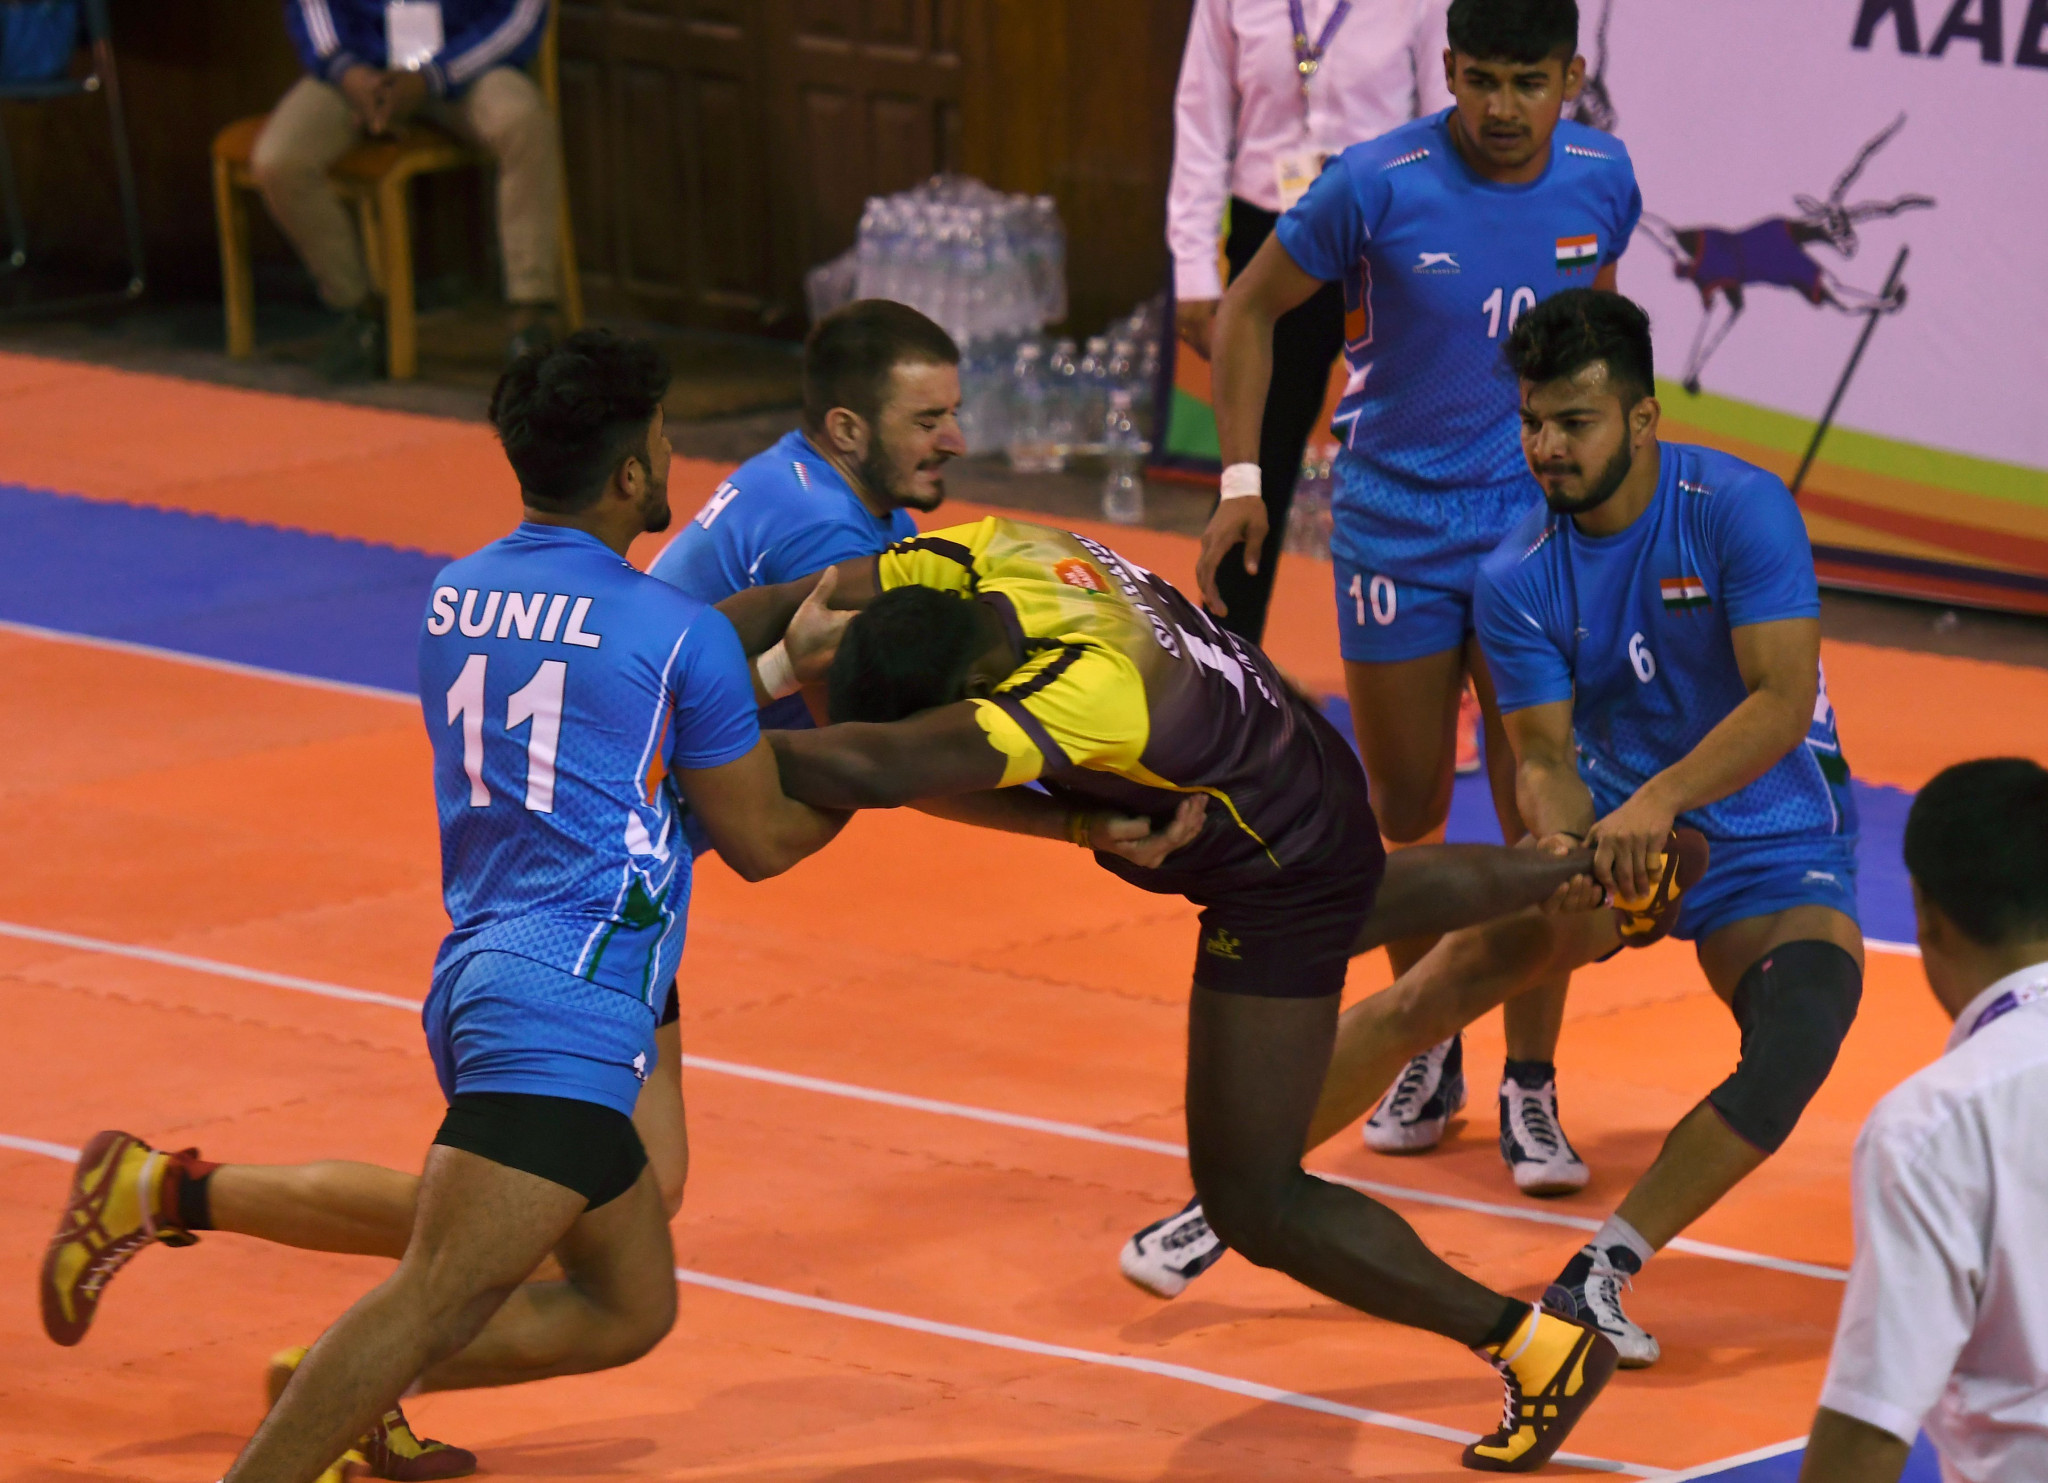 Indian Sports Minister hopes Asian Games promotion helps kabaddi Olympic ambitions